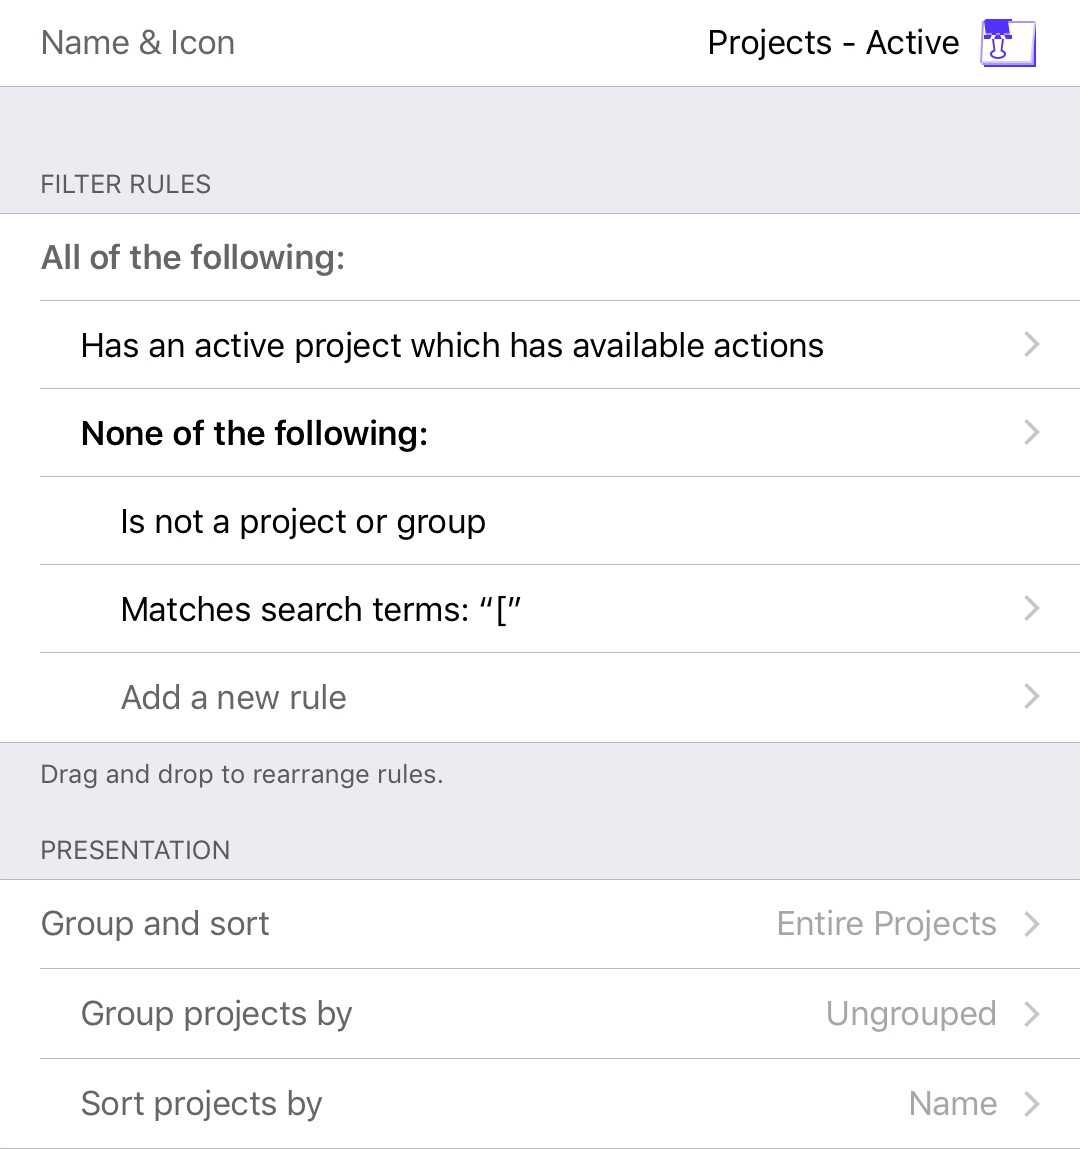 OmniFocus 3 for iOS Perspective - Projects - Active